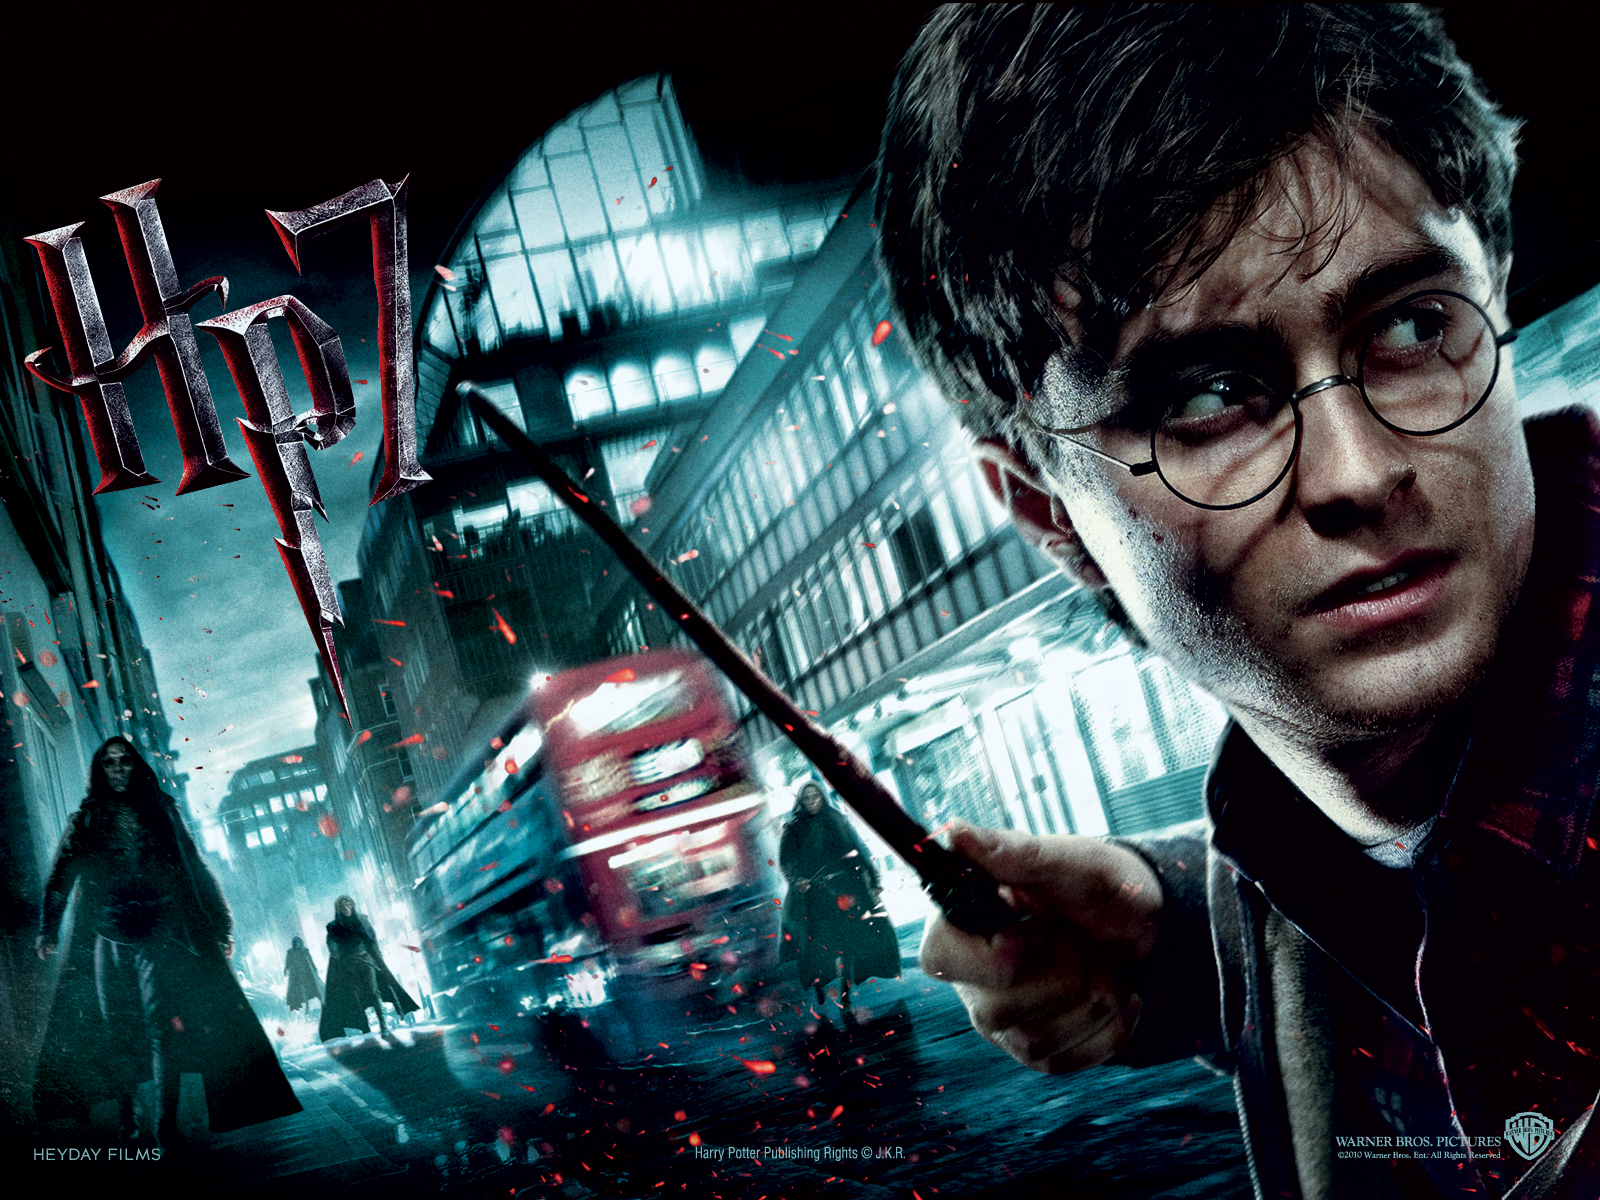 http://3.bp.blogspot.com/_U8UaDXAoF2Y/TPKSy8hZU-I/AAAAAAAABHg/hX82cn3JXs0/s1600/harry_potter_e_as_reliquias_da_morte_papel_de_parede_2.jpg